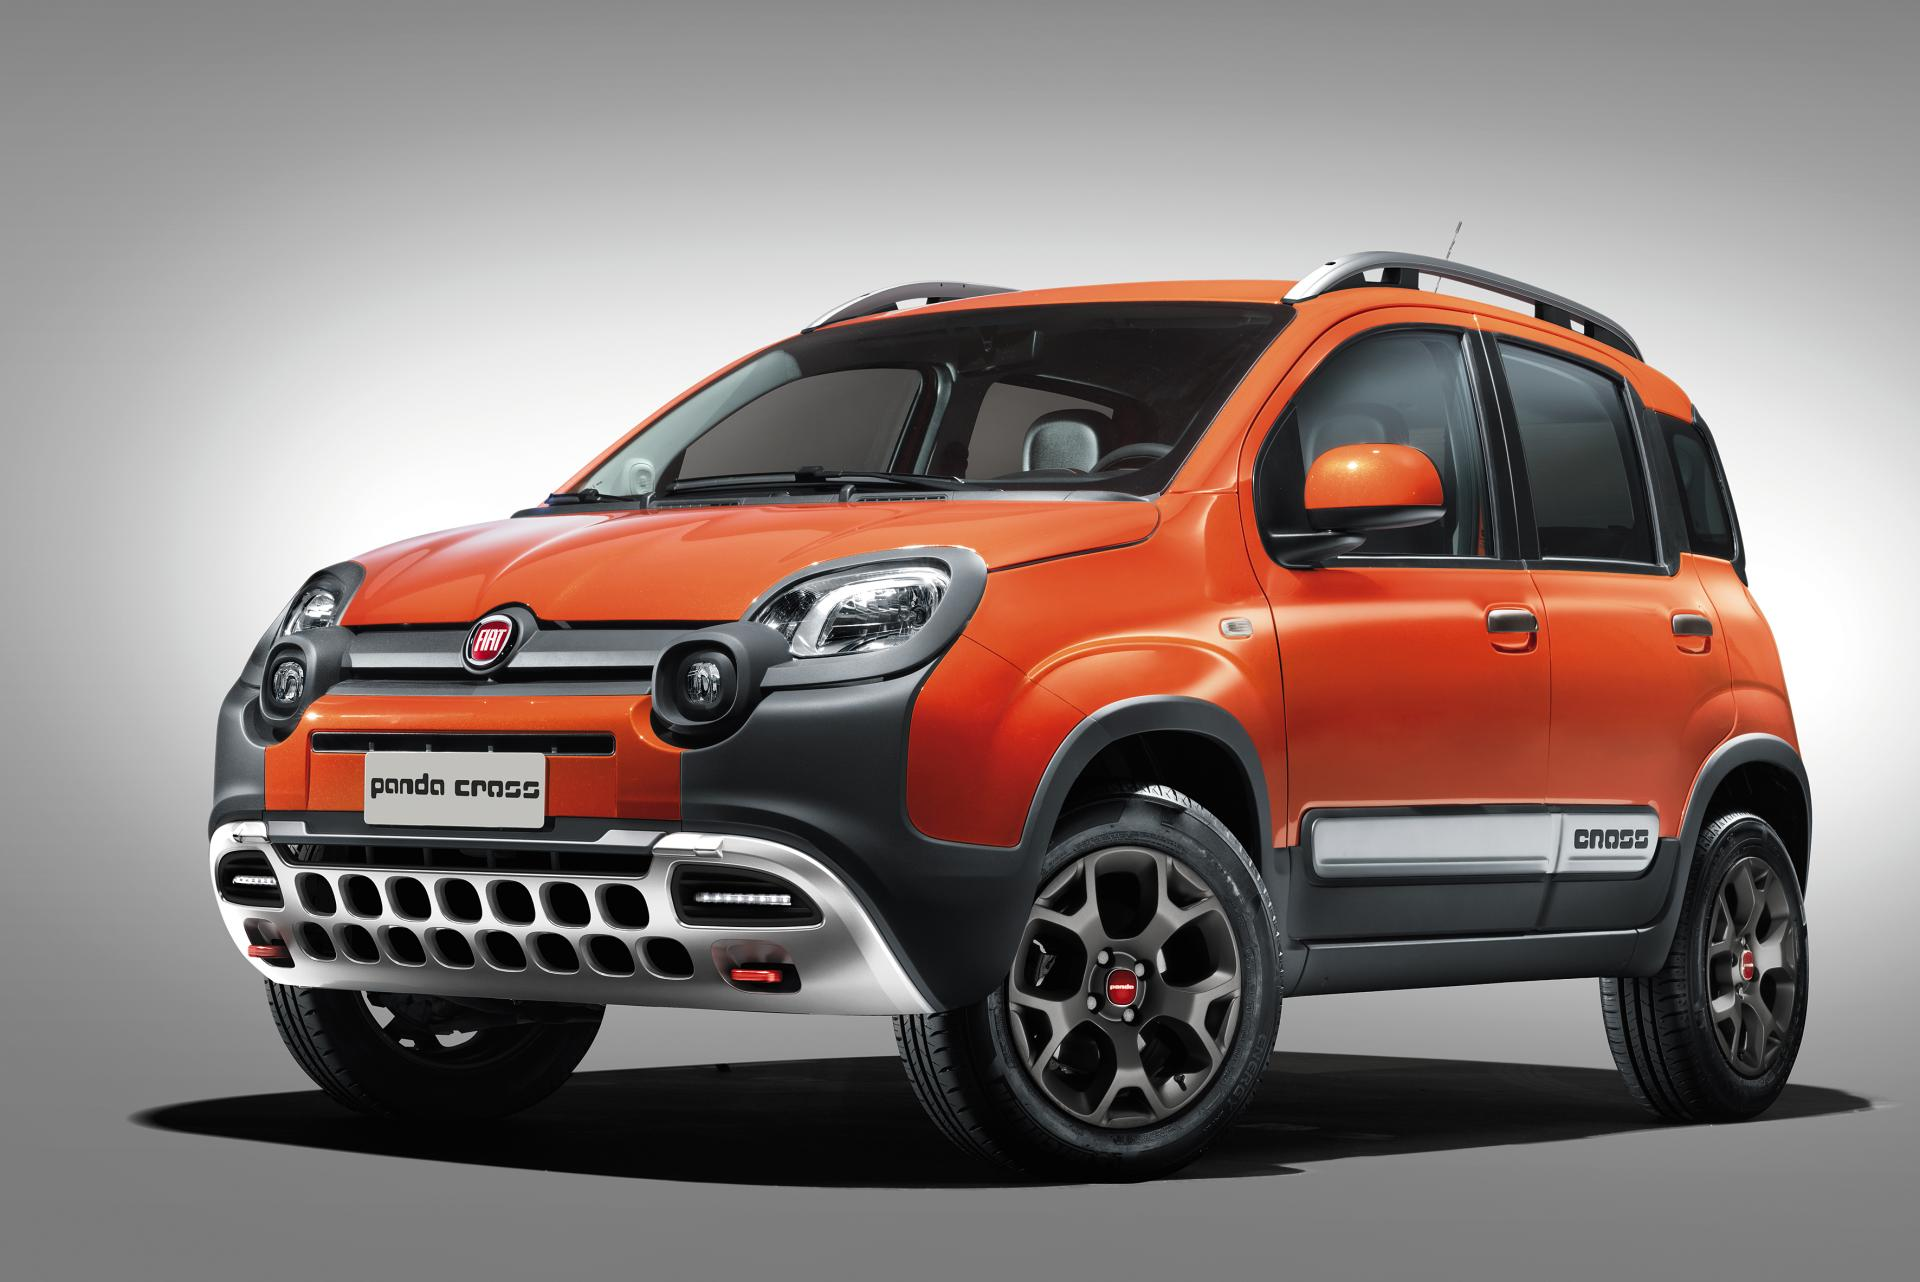 2014 fiat panda cross technical specifications and data engine dimensions and mechanical. Black Bedroom Furniture Sets. Home Design Ideas